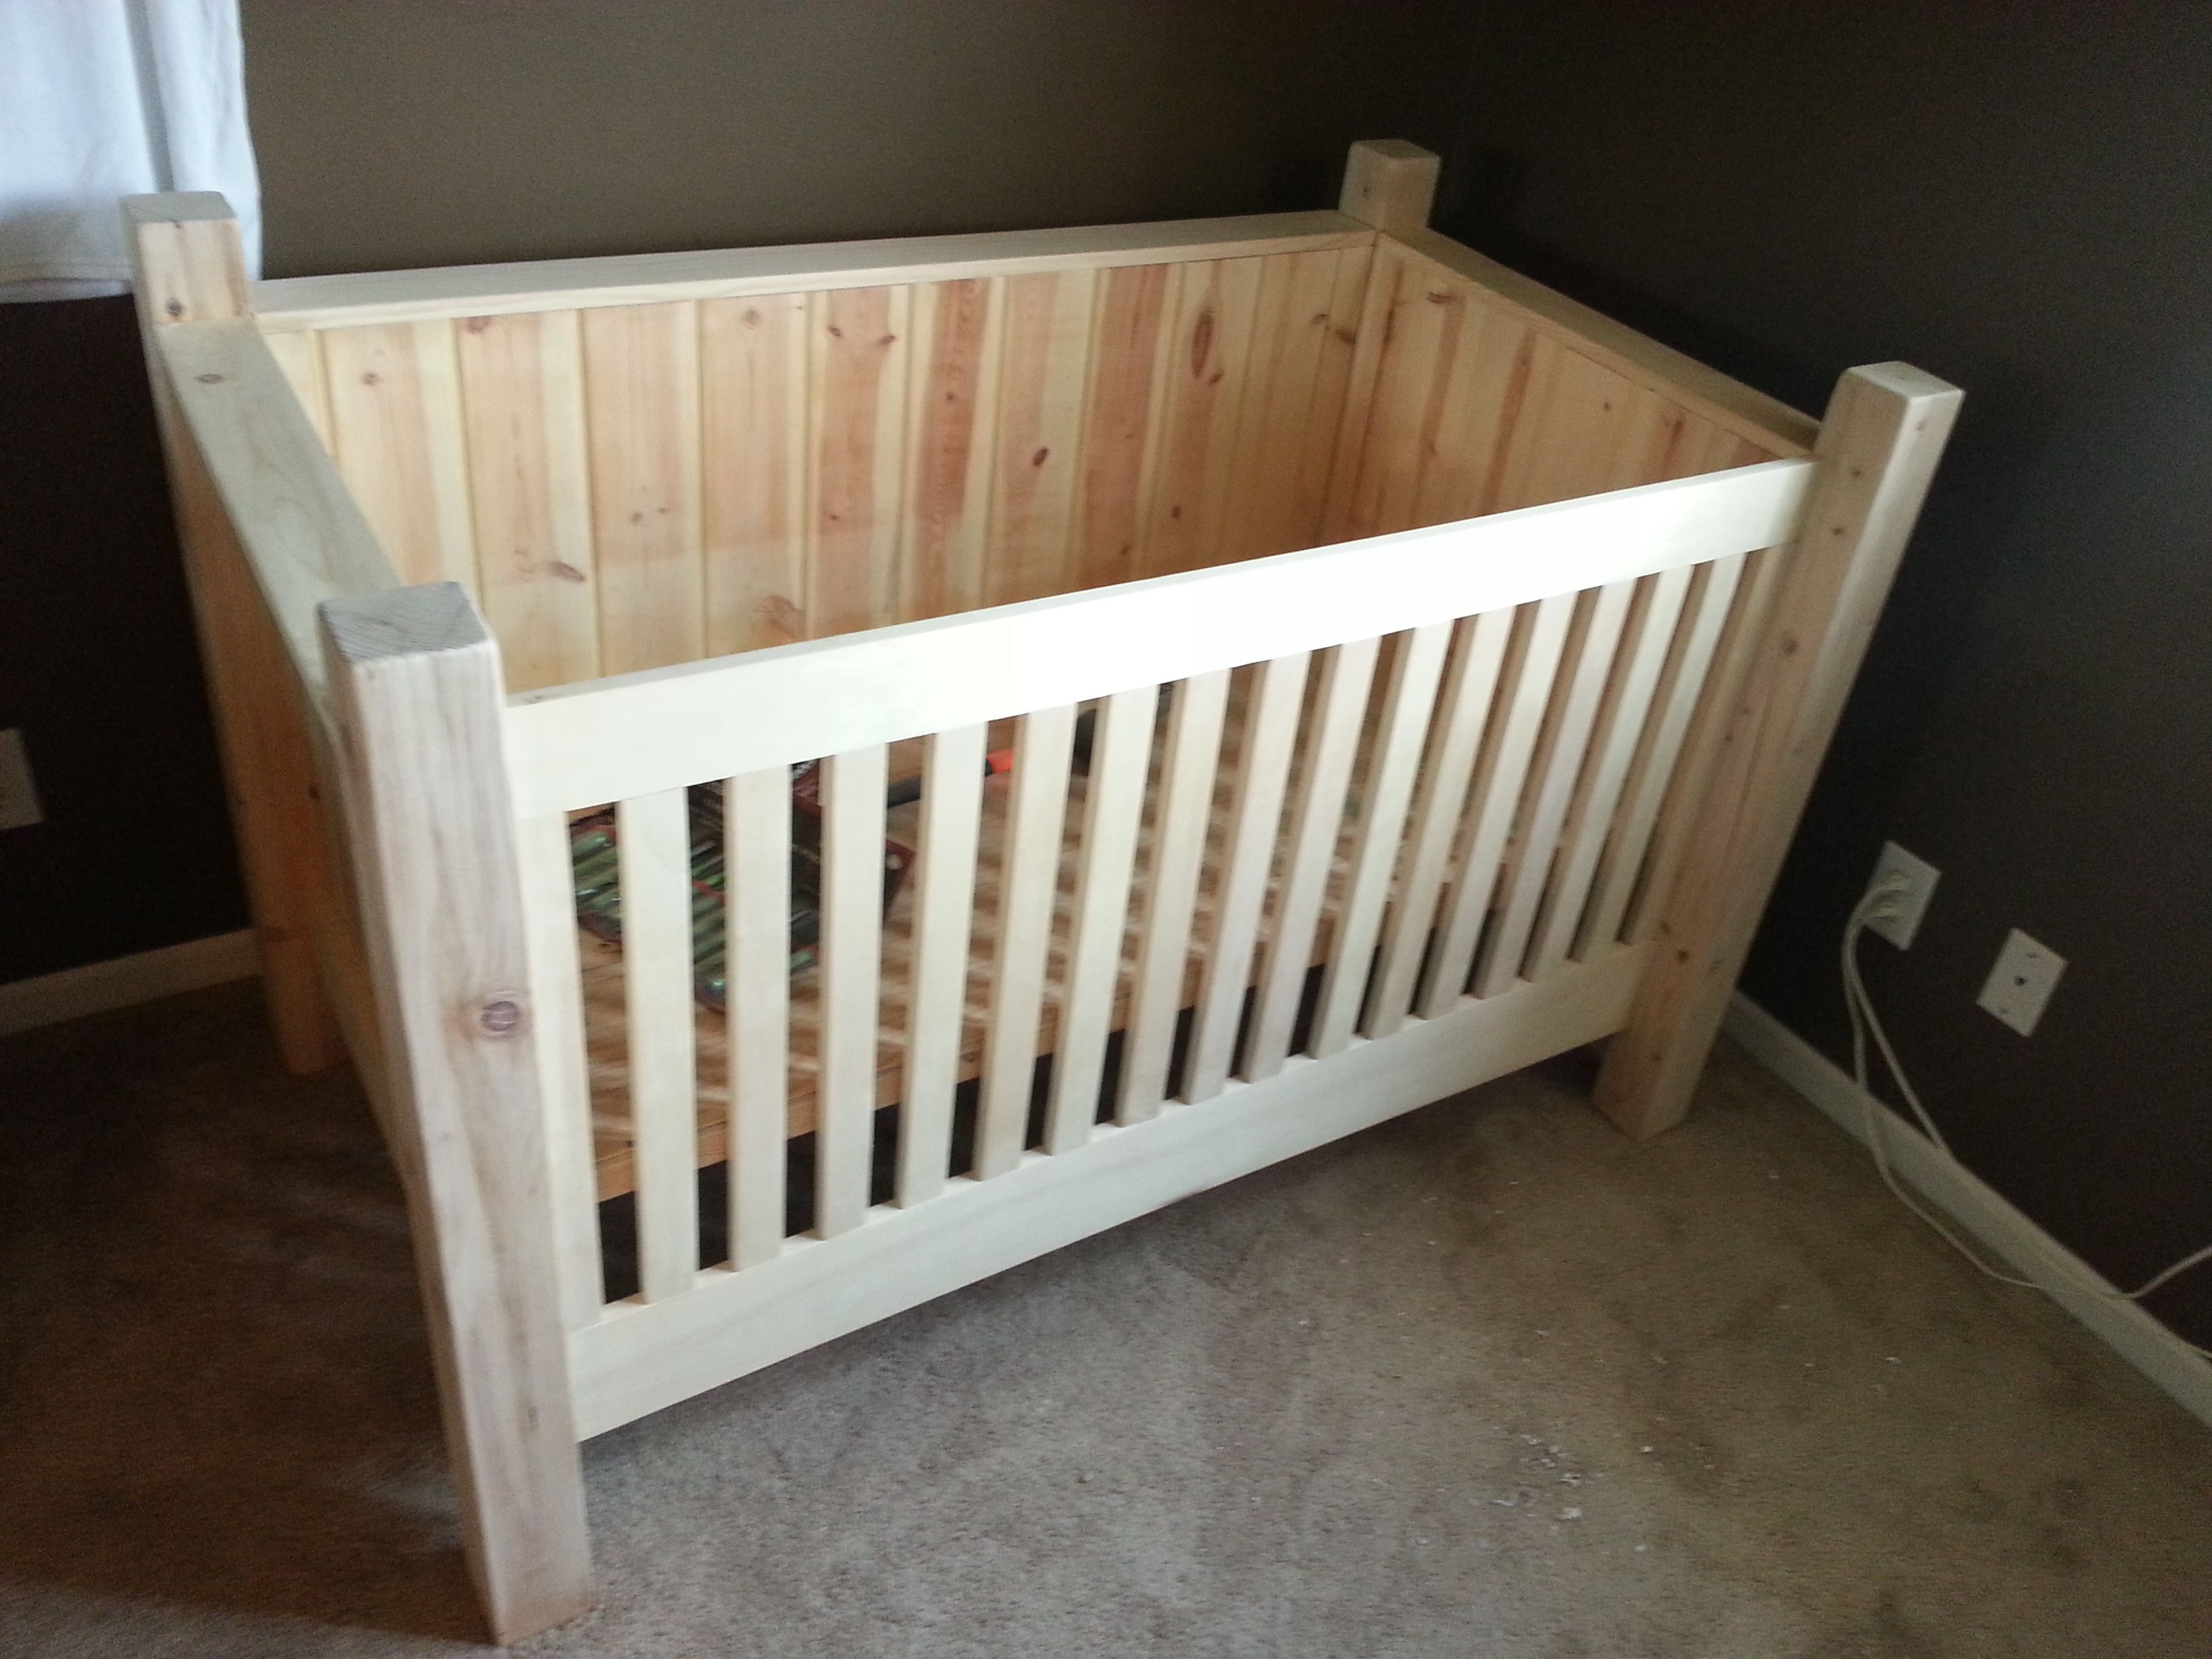 Unfinished crib for sale - Wooden Crib For Sale In Cavite 25 Best Ideas About Wood Crib On Pinterest Boy